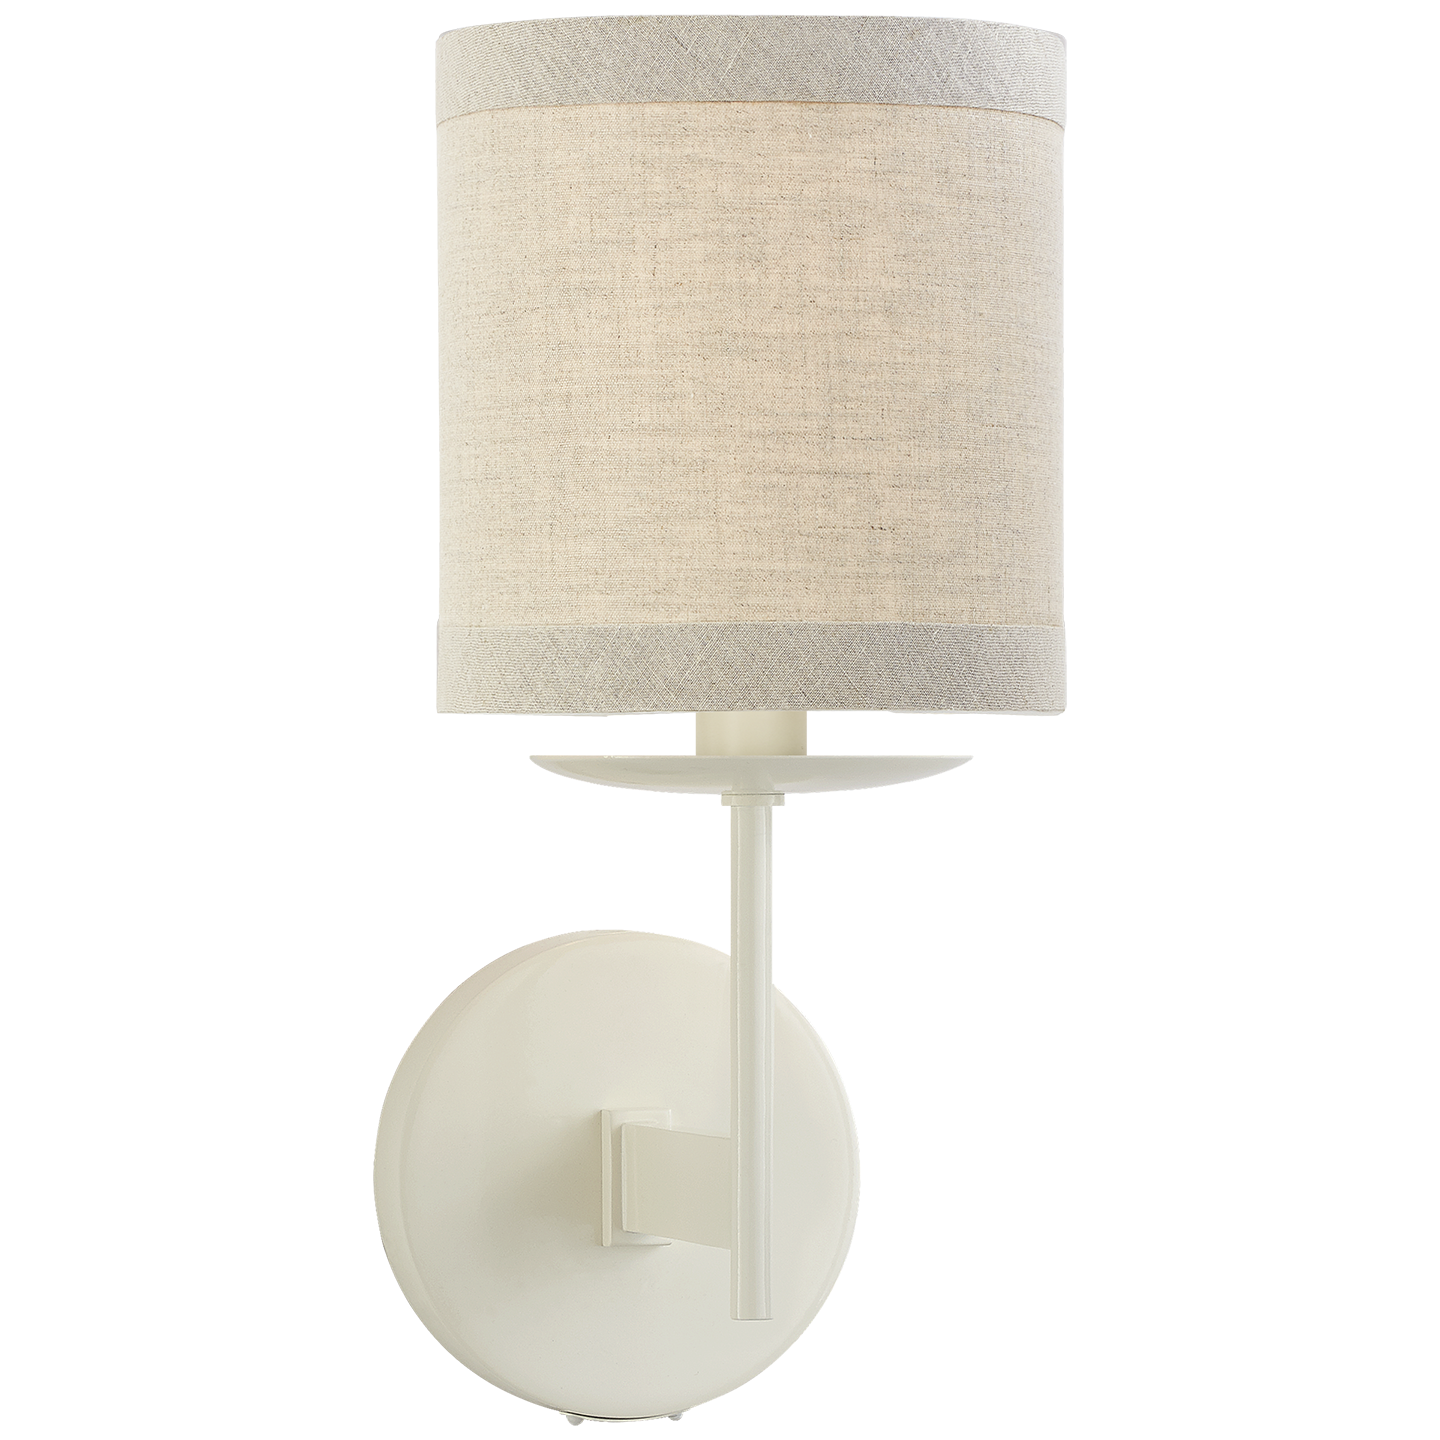 """Walker Small Sconce in Light Cream with Natural Linen Shade Item # KS 2070LC-NL   Designer: kate spade new york Height: 12.25"""" Width: 5.5"""" Extension: 7.25"""" Backplate: 4.5"""" Round Socket: E12 Candelabra Wattage: 60 B"""